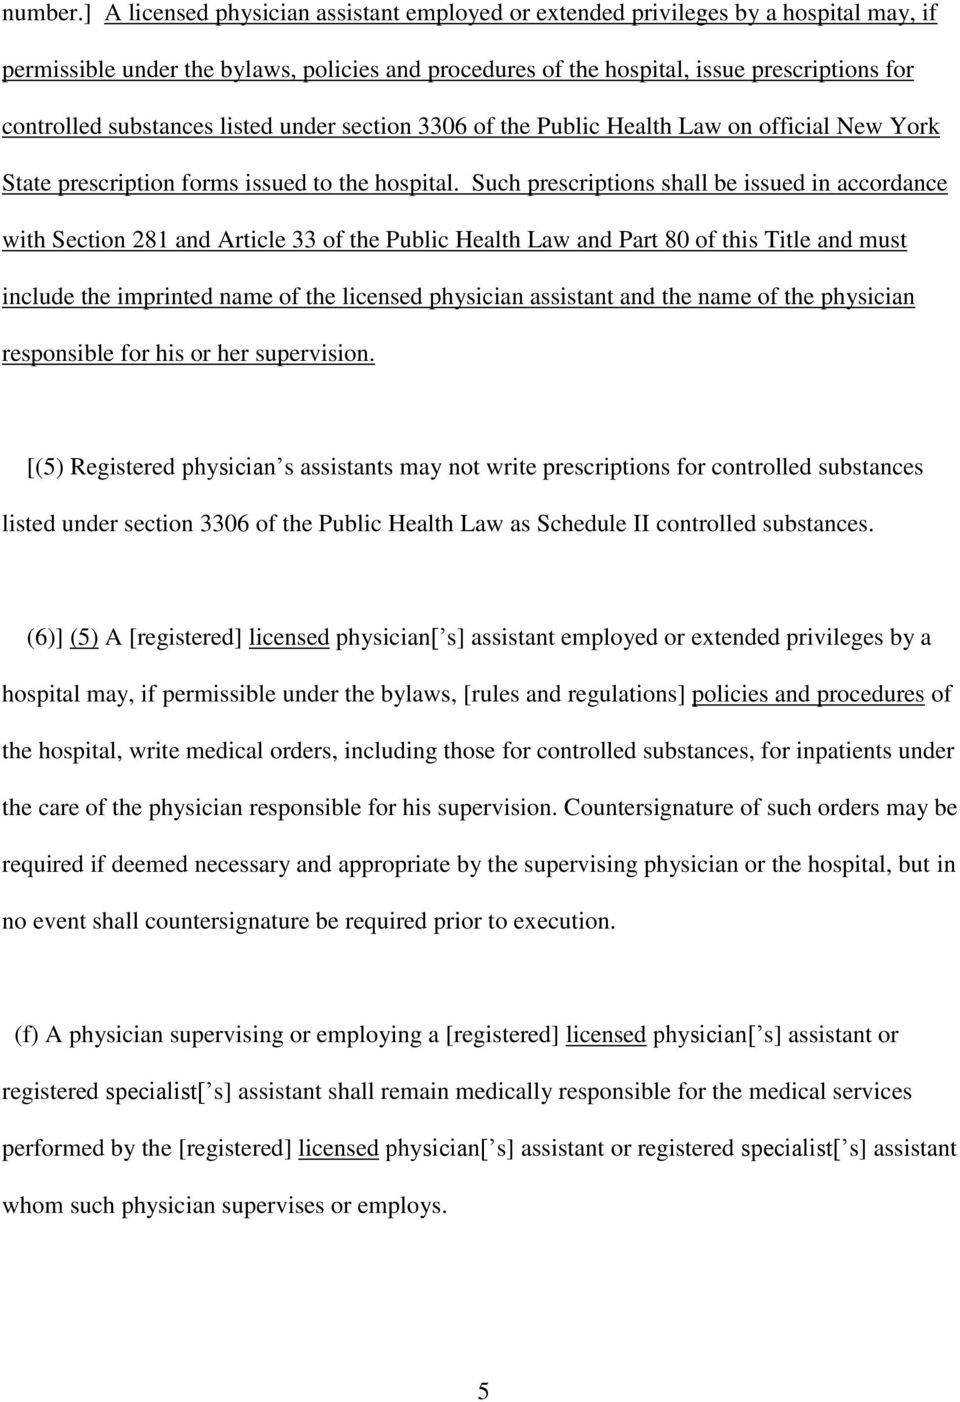 substances listed under section 3306 of the Public Health Law on official New York State prescription forms issued to the hospital.